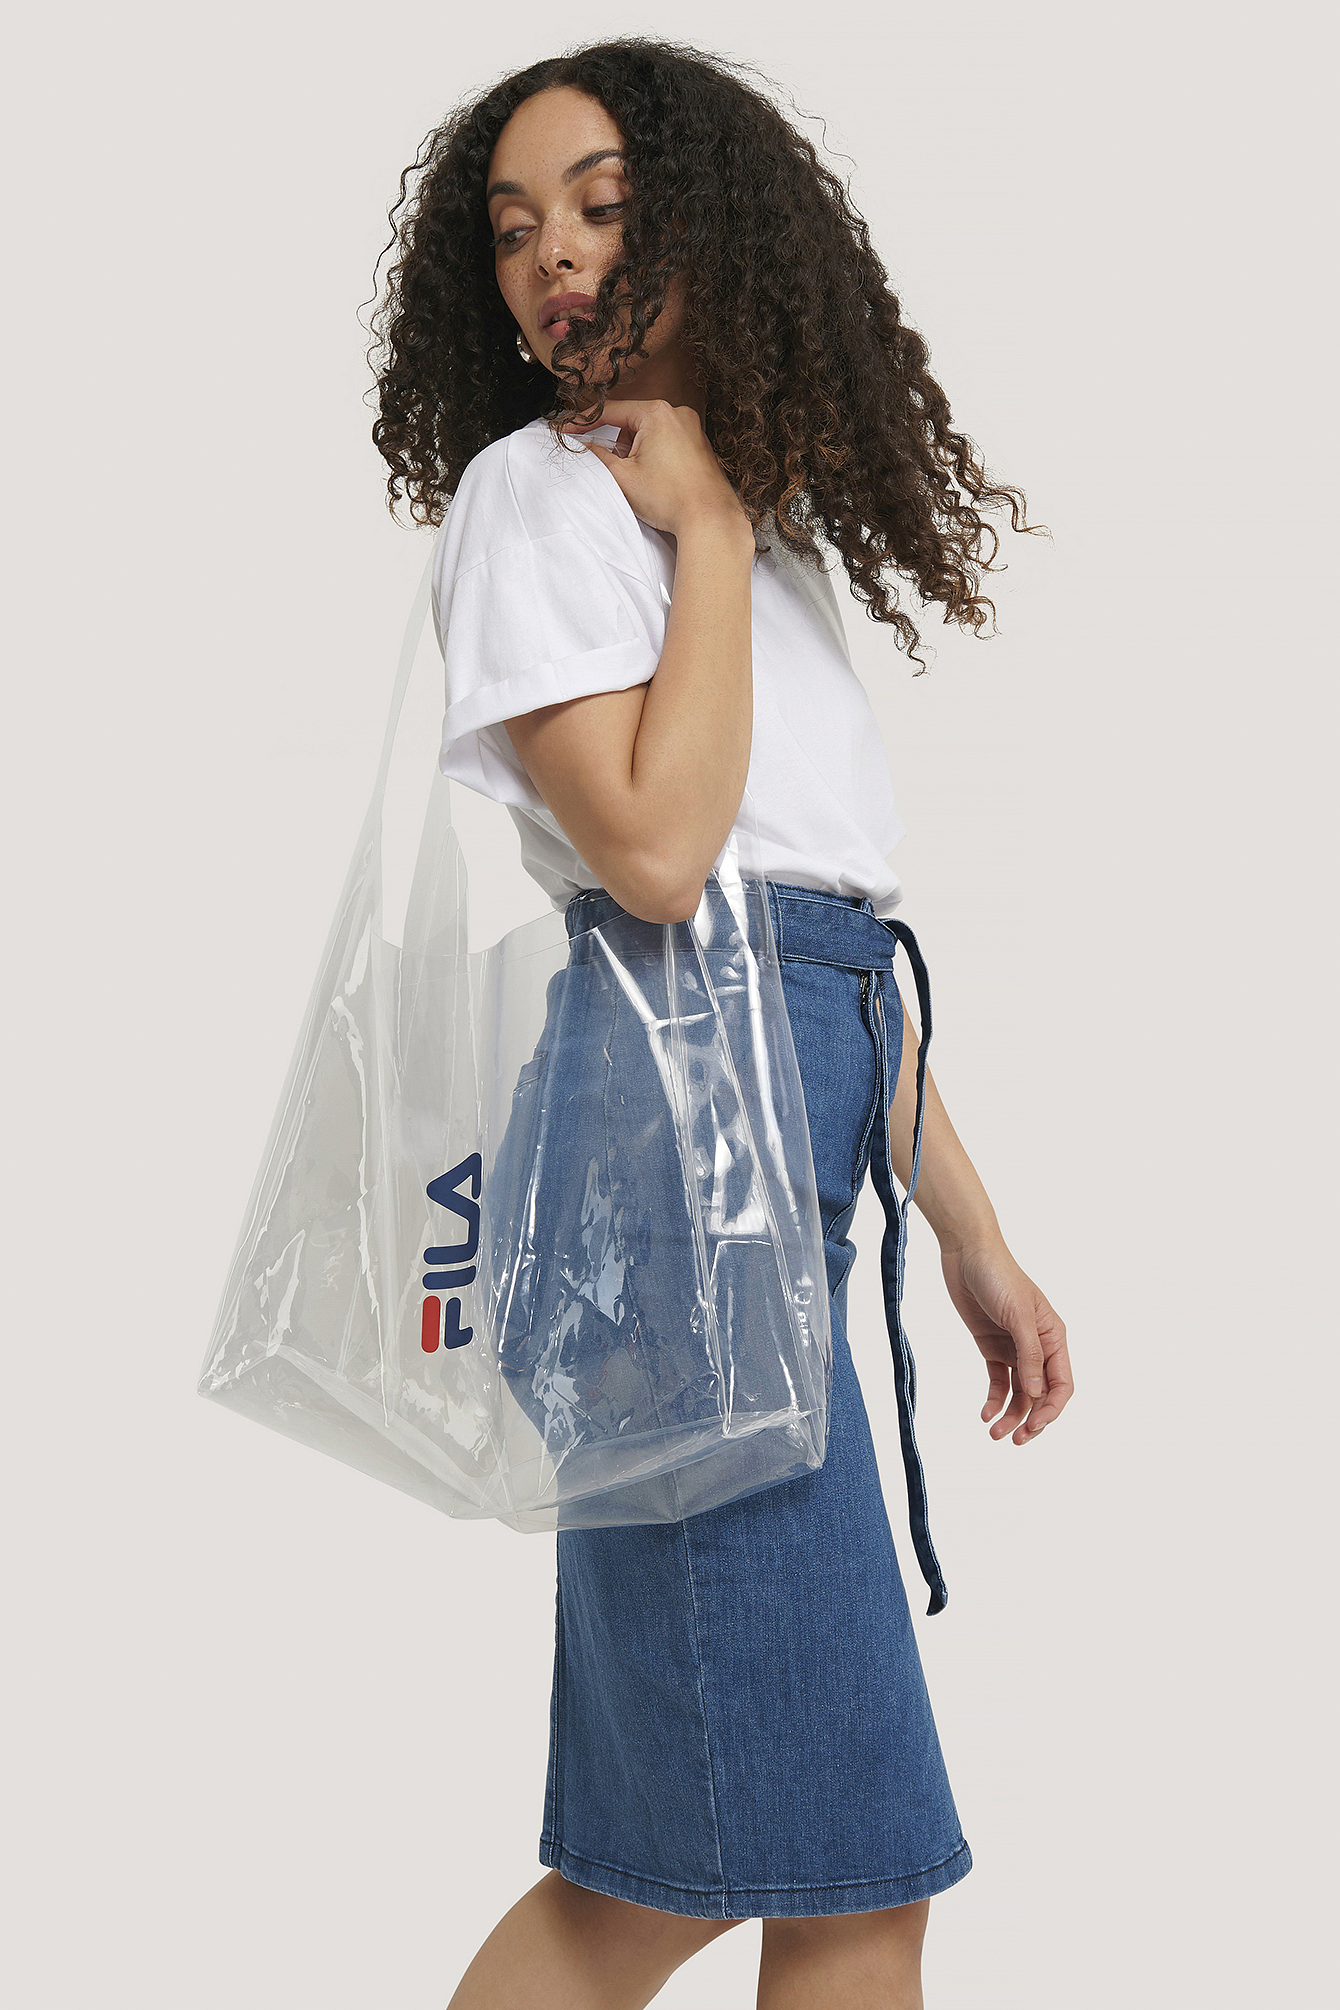 fila -  City-Shopper-Tasche - White